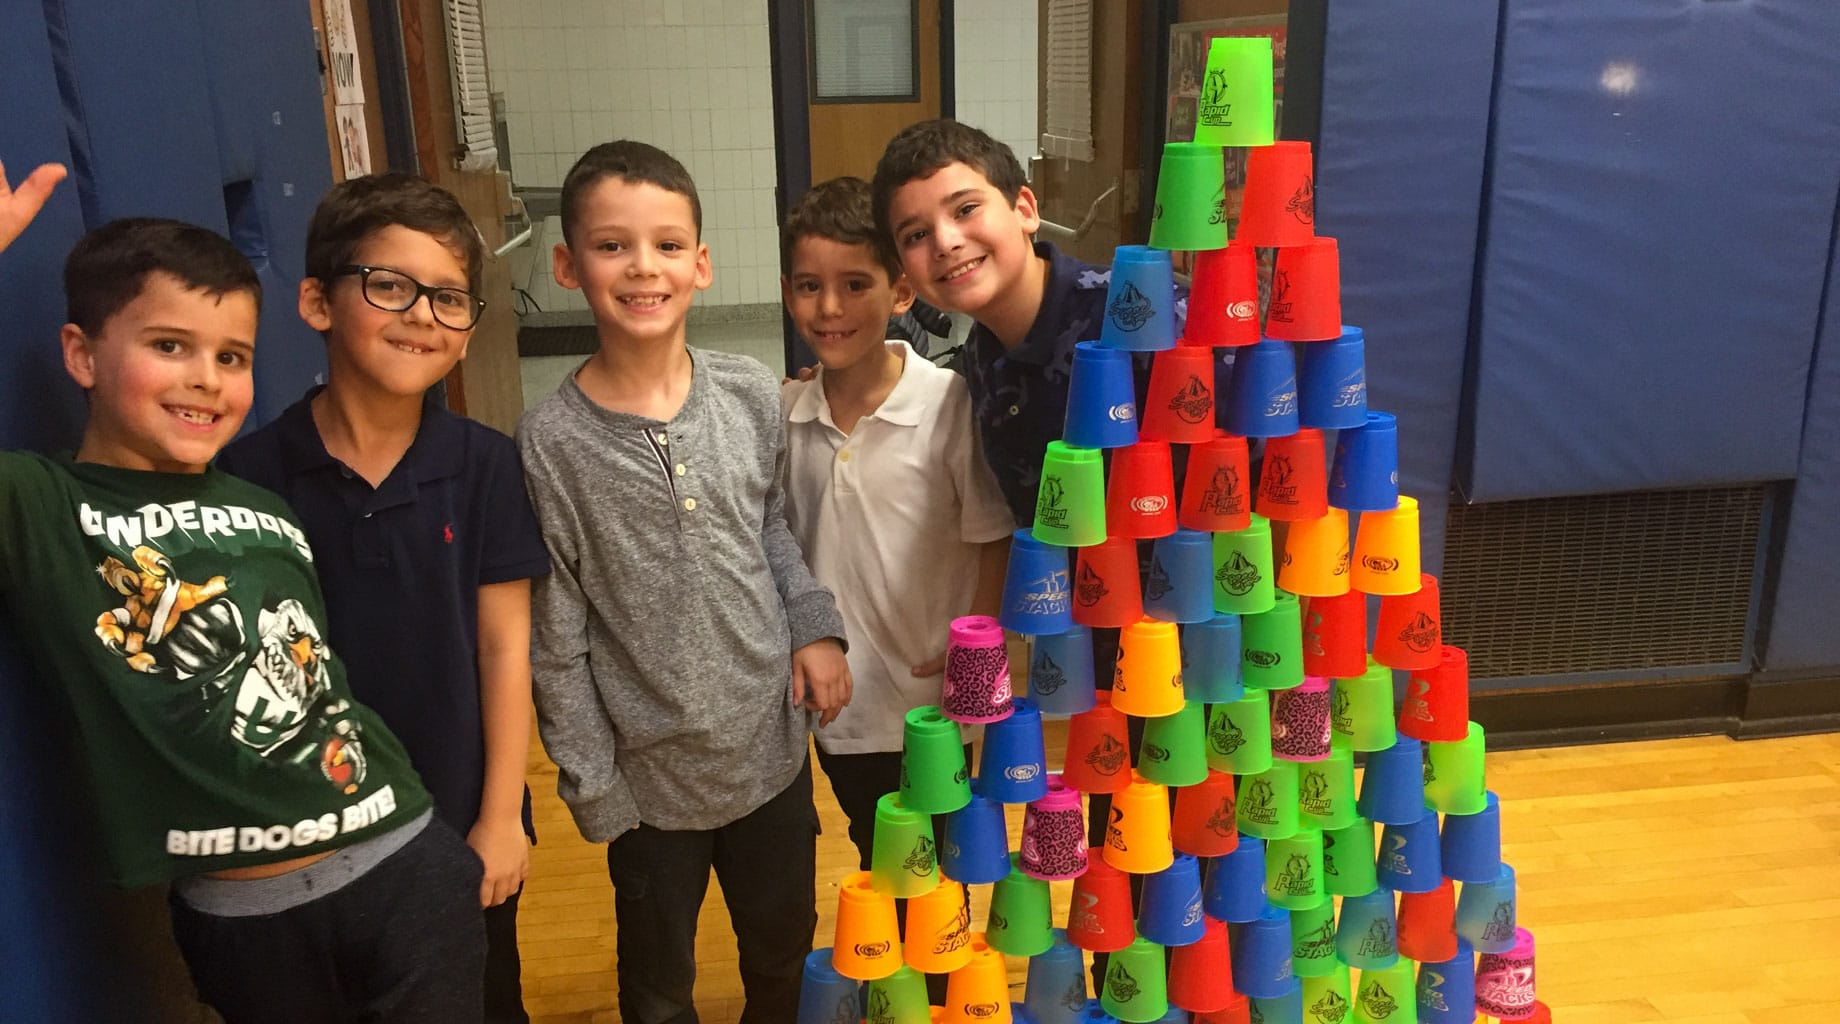 Lower school boys stacking cups